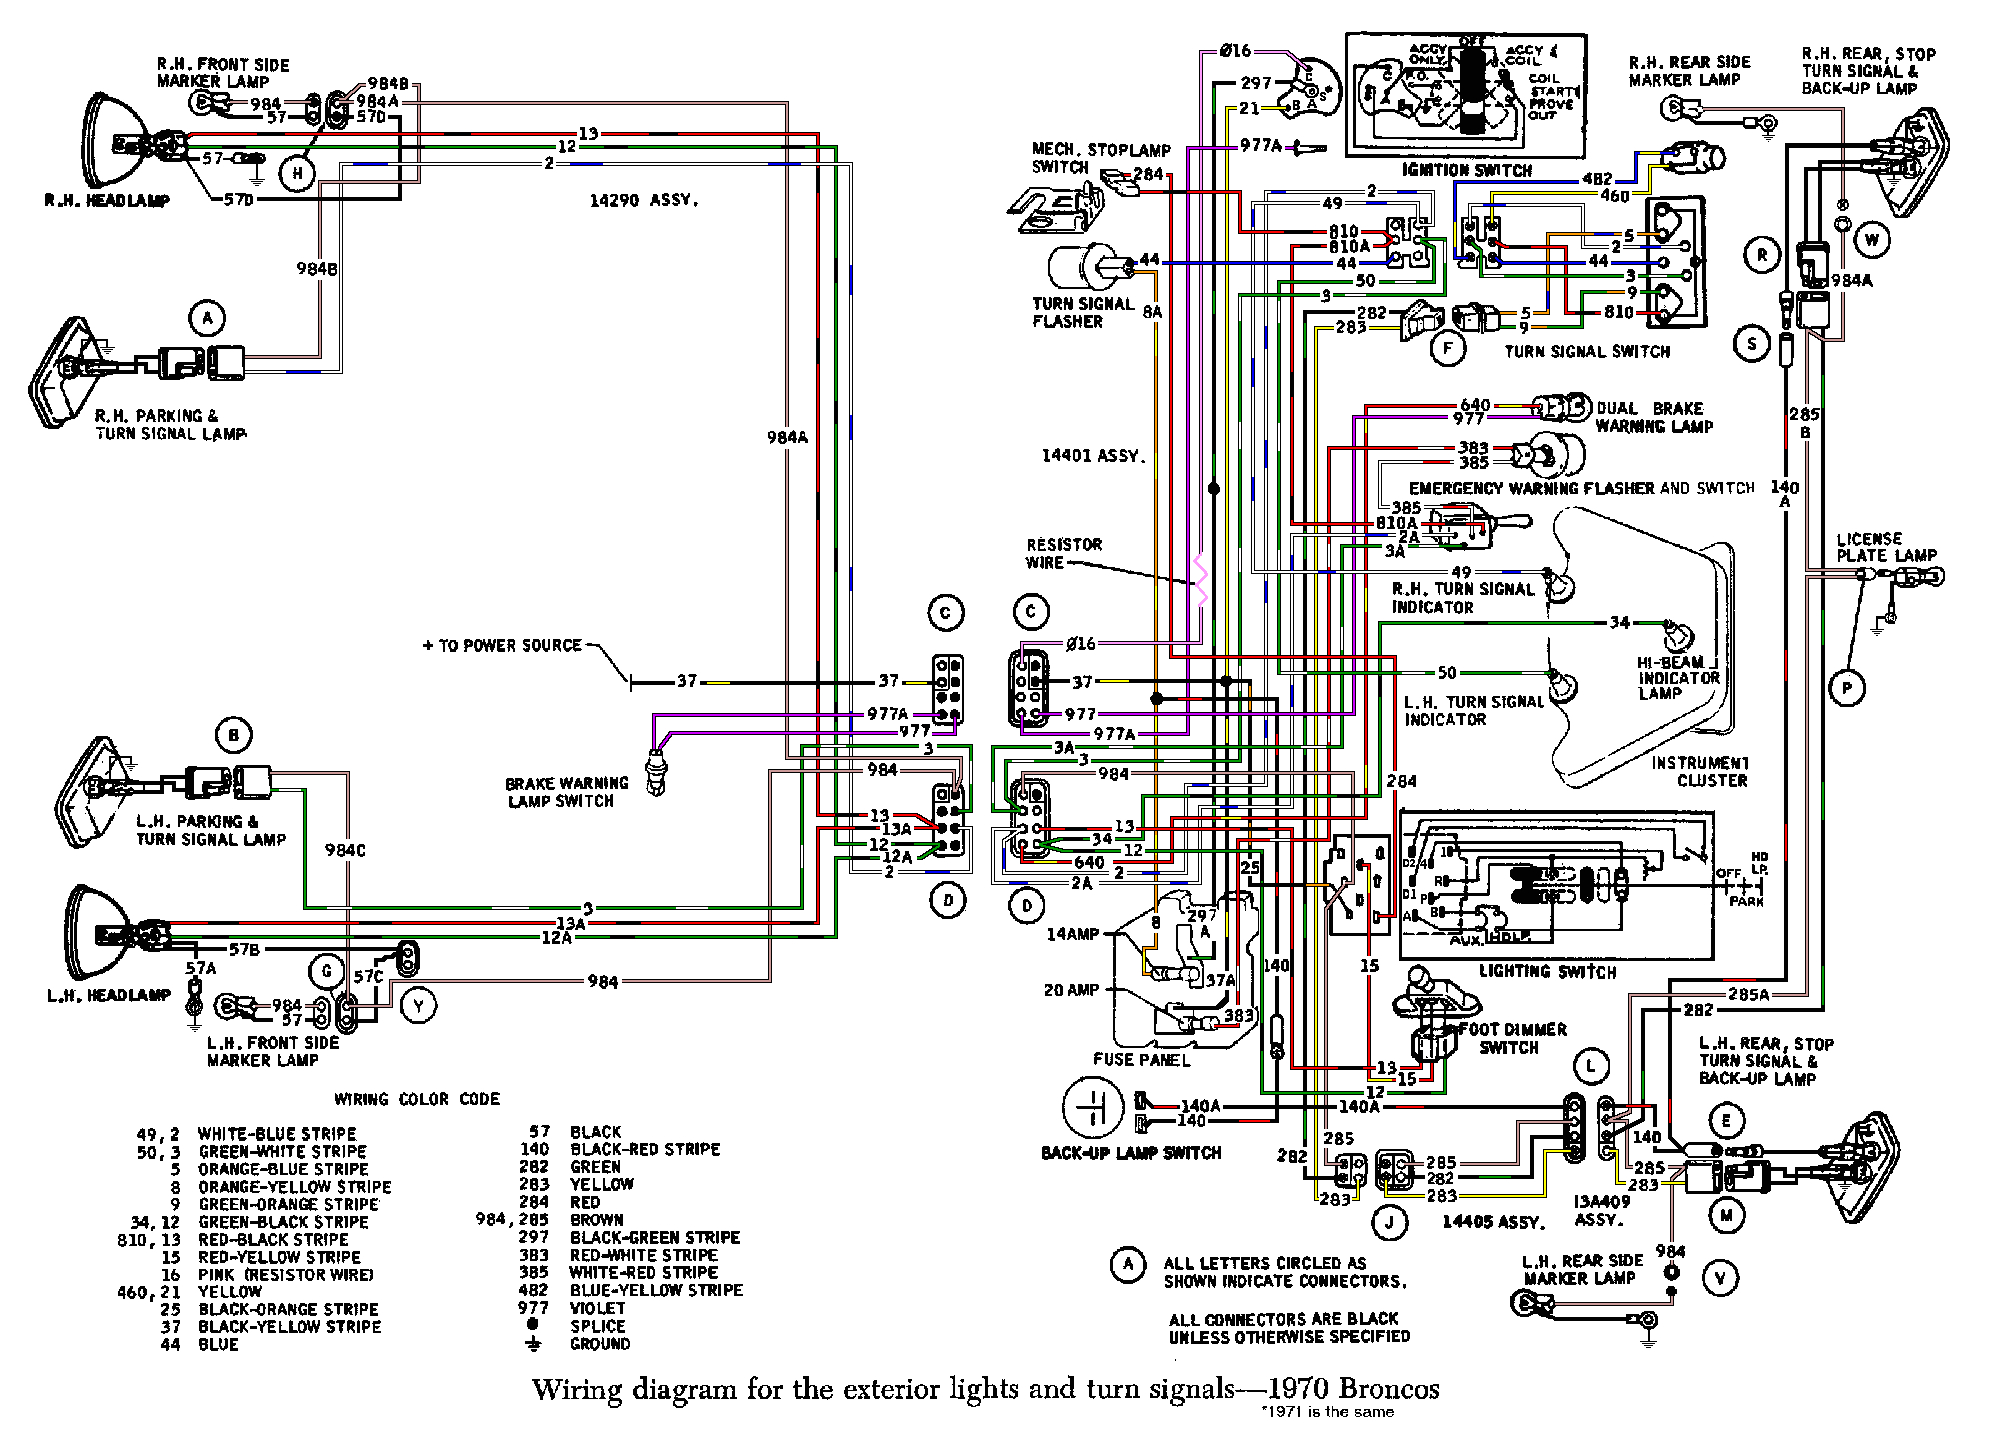 bronco com technical reference wiring diagrams 70 bronco wiring diagram source 69 ford